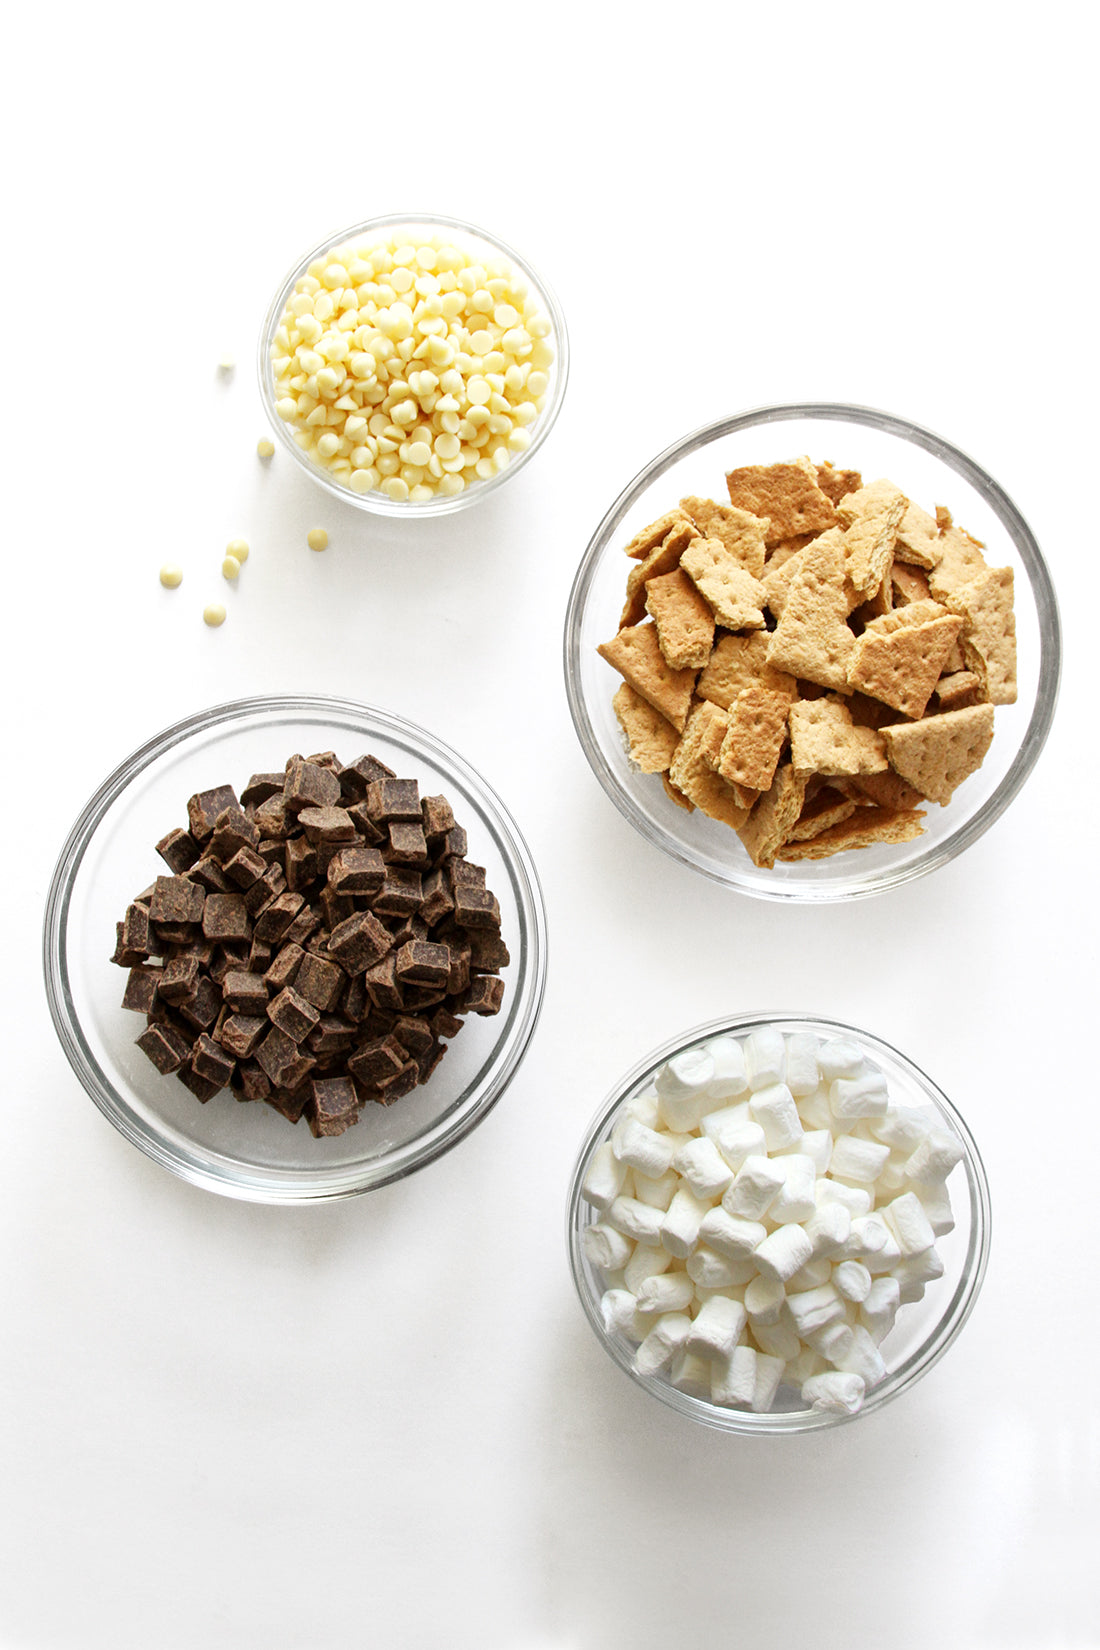 Image of four bowls with ingredients for Miss Jones Baking Co Campfire Smores Brownies Recipe